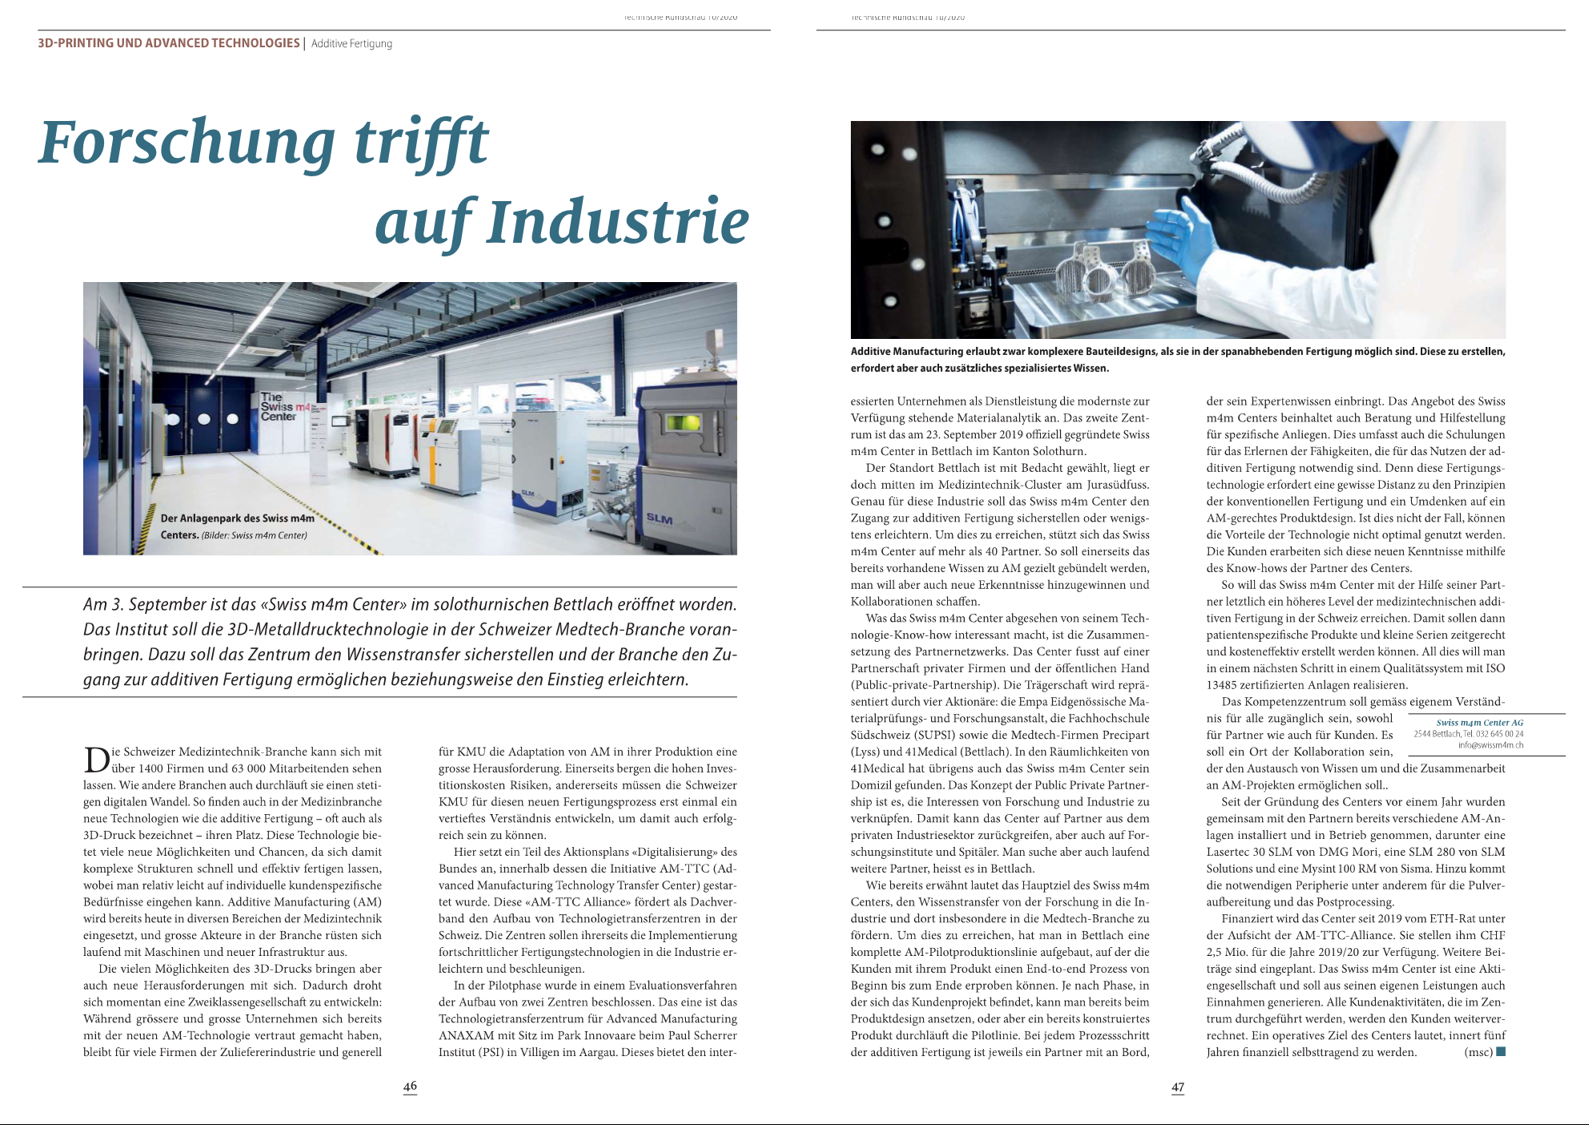 Research meets industry - Technische Rundschau